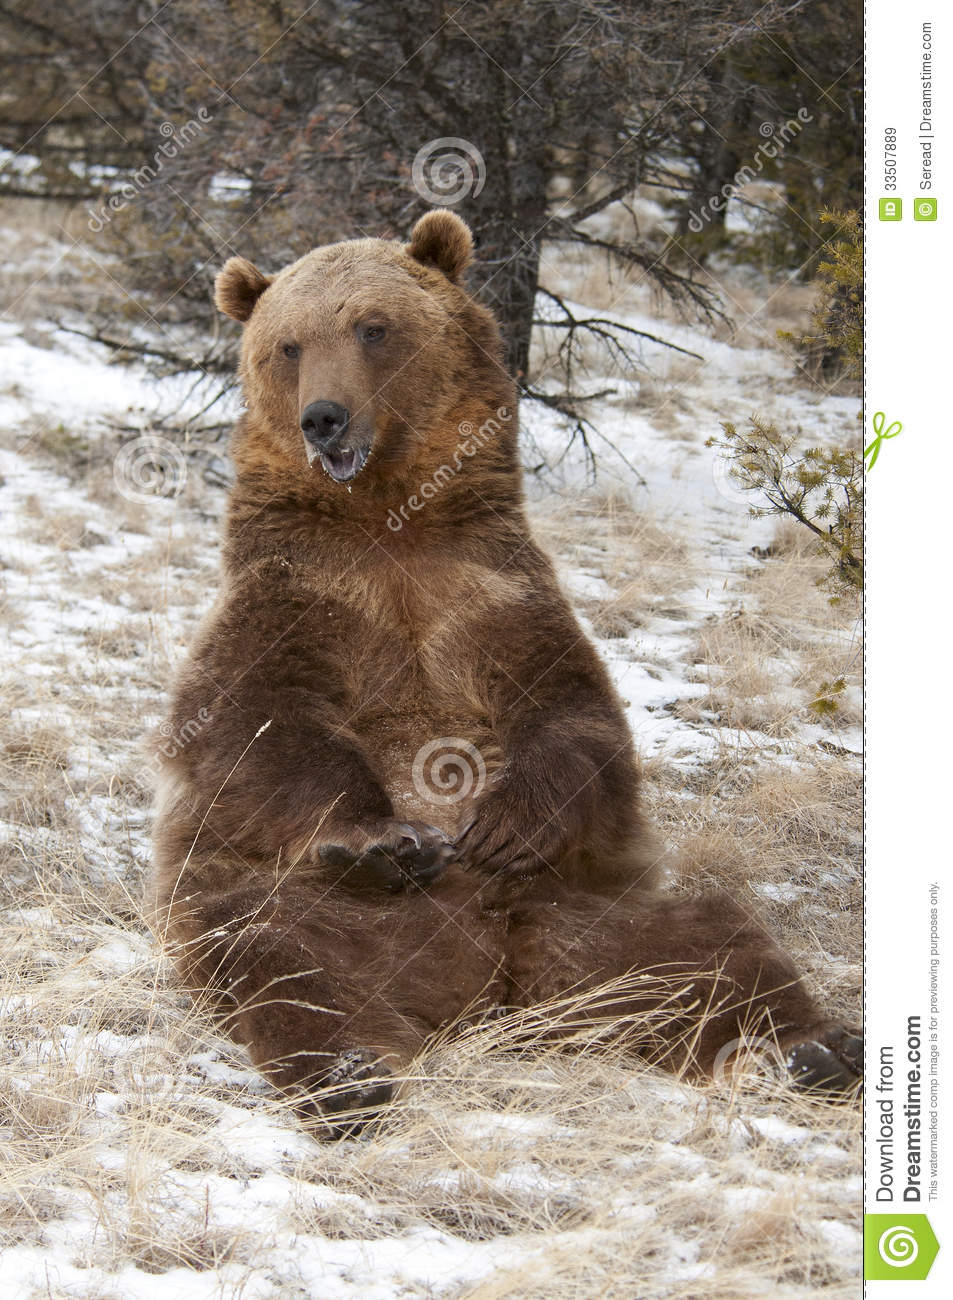 Grizzly bear sitting up - photo#30